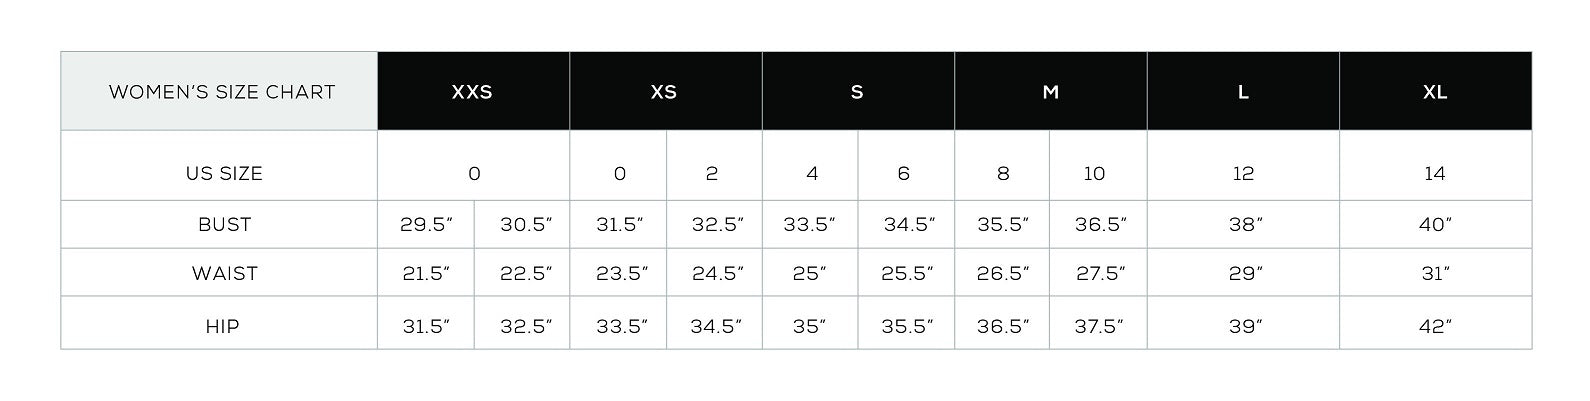 Rails Clothing Brand Size Guide